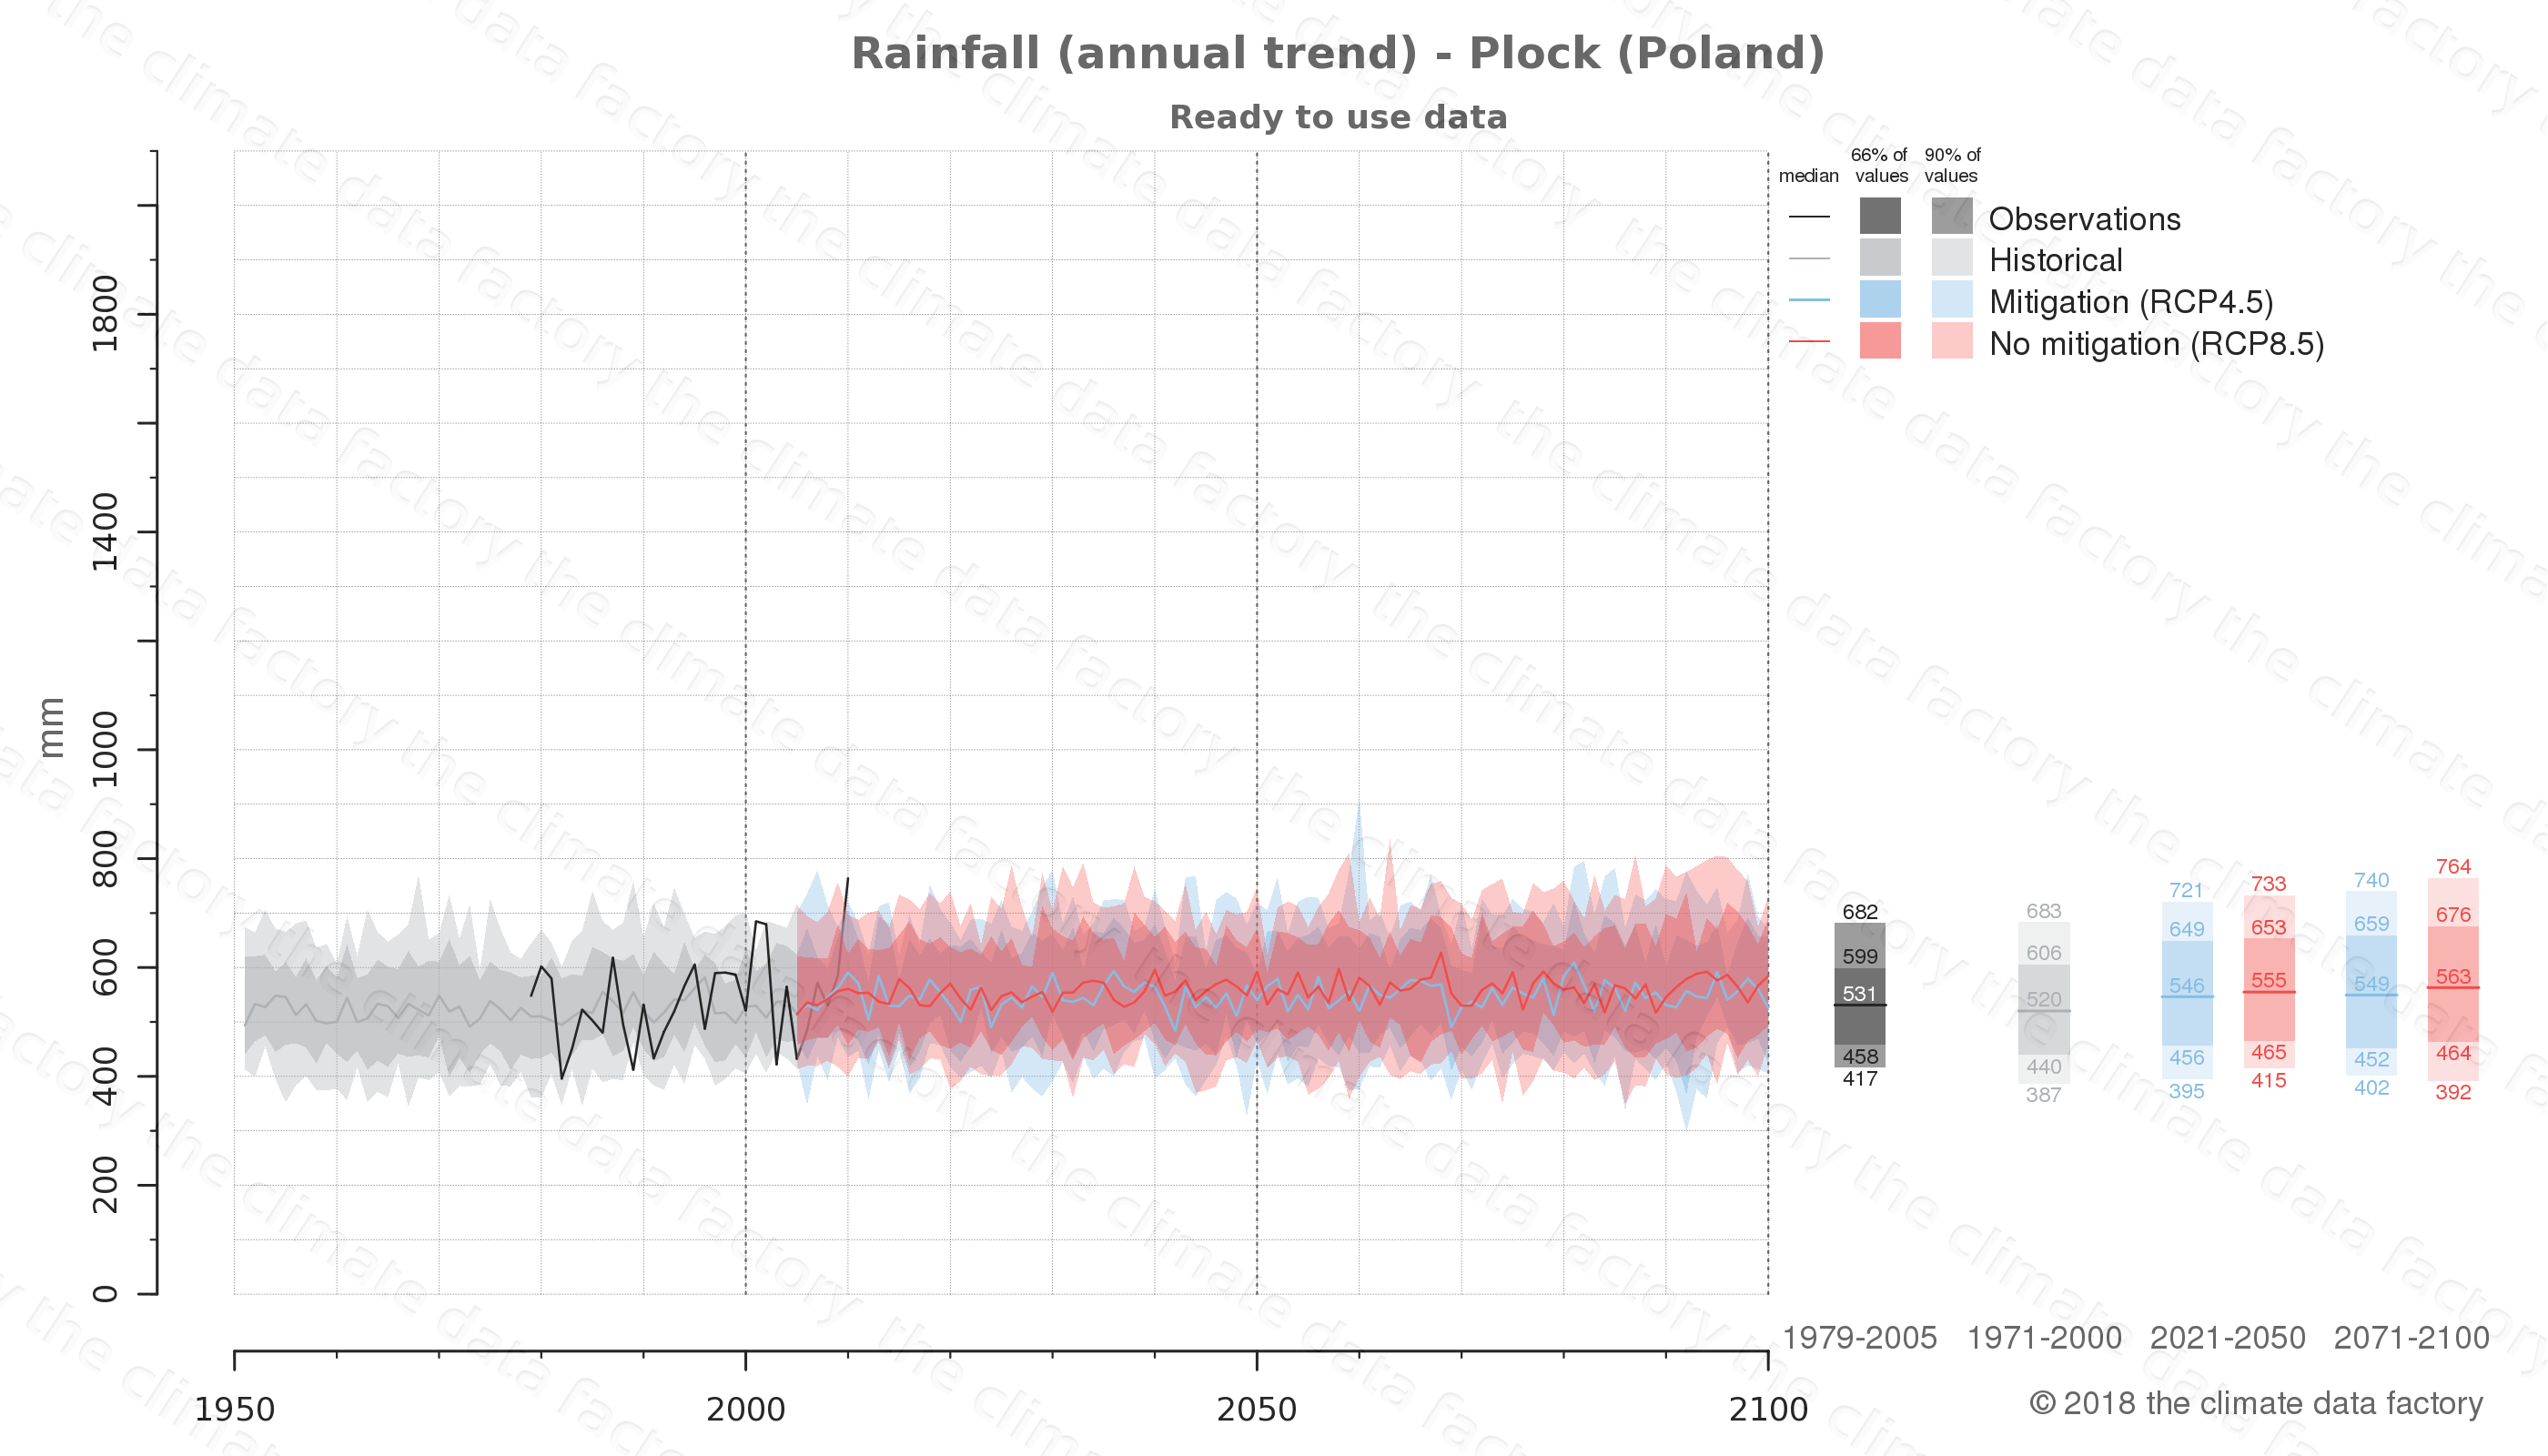 climate change data policy adaptation climate graph city data rainfall plock poland